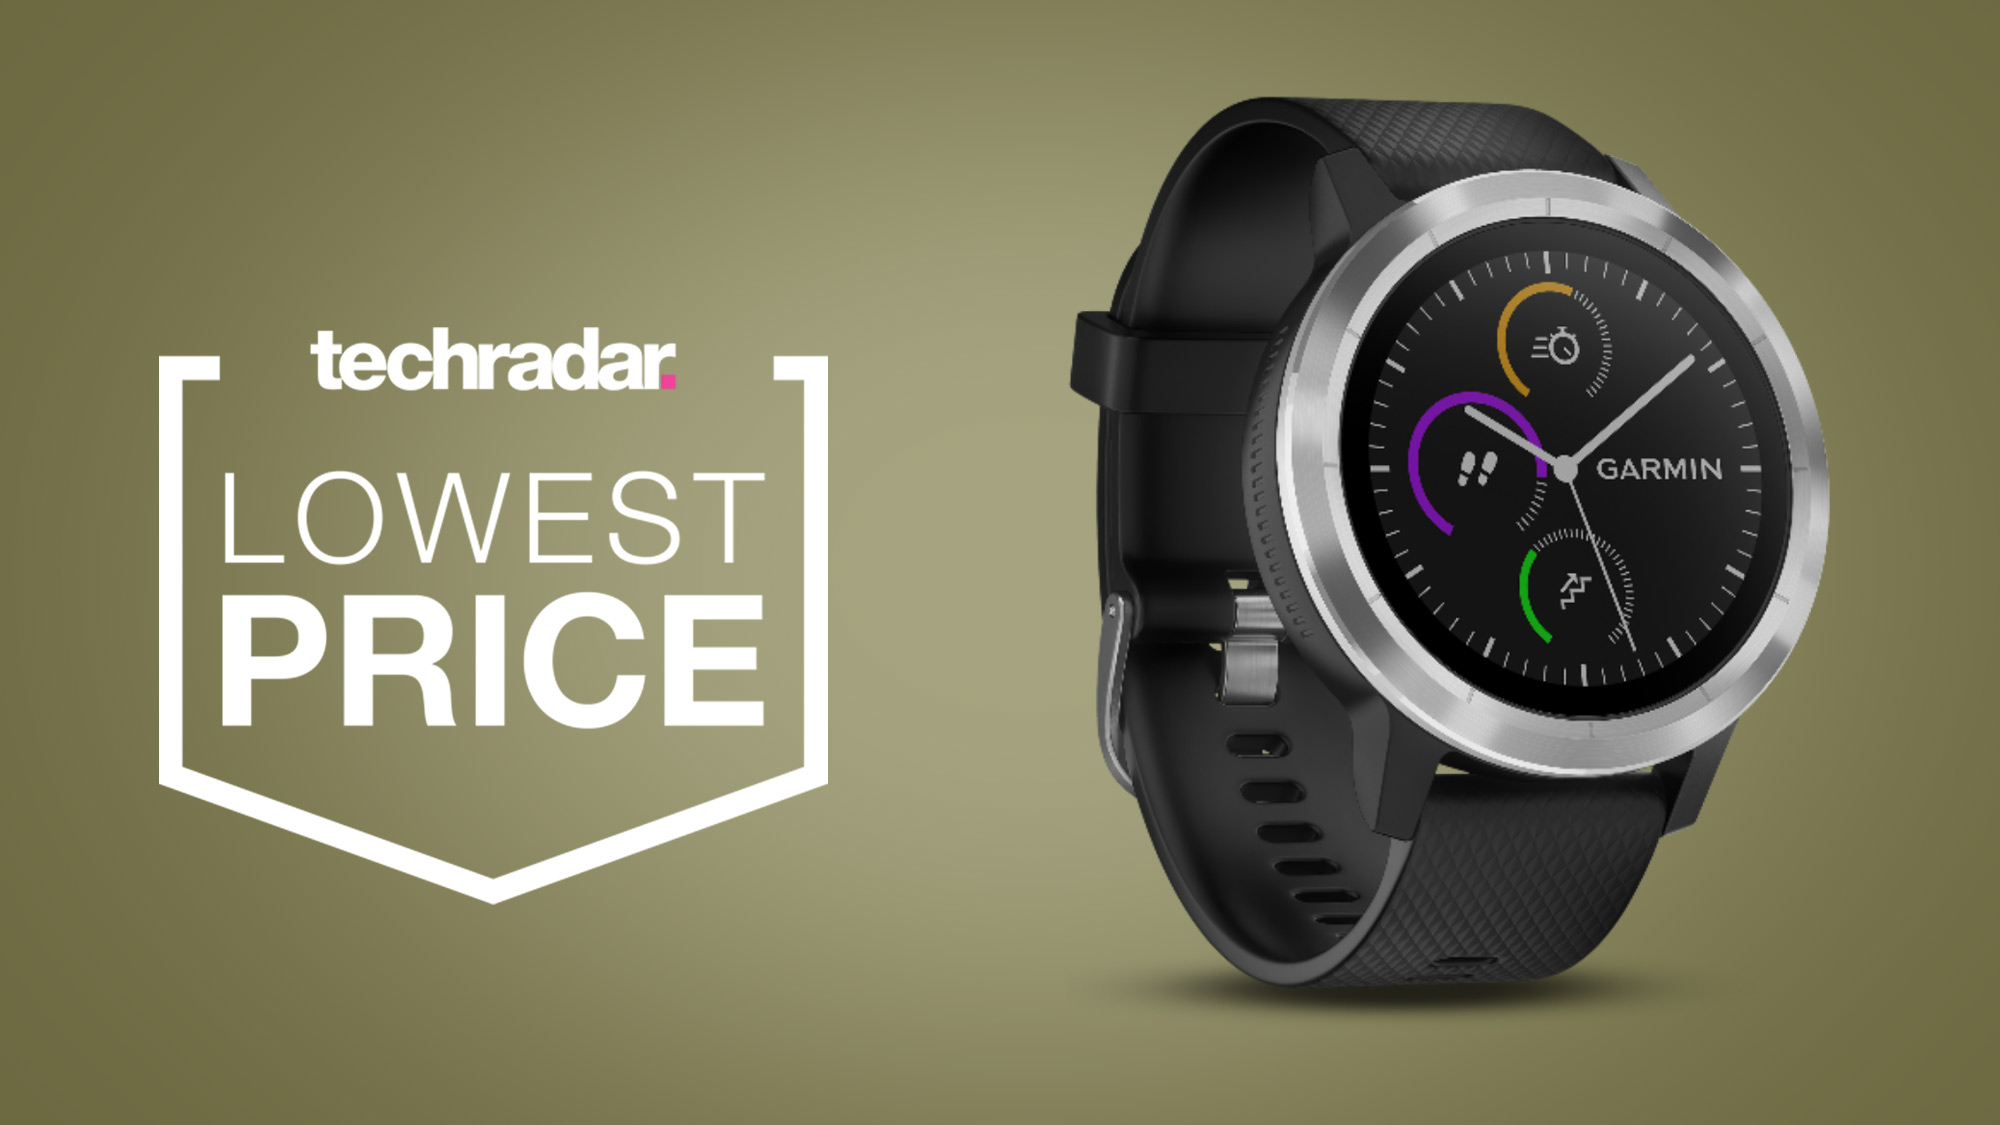 Garmin Vivoactive 3 drops to lowest ever price in Presidents' Day sales thumbnail